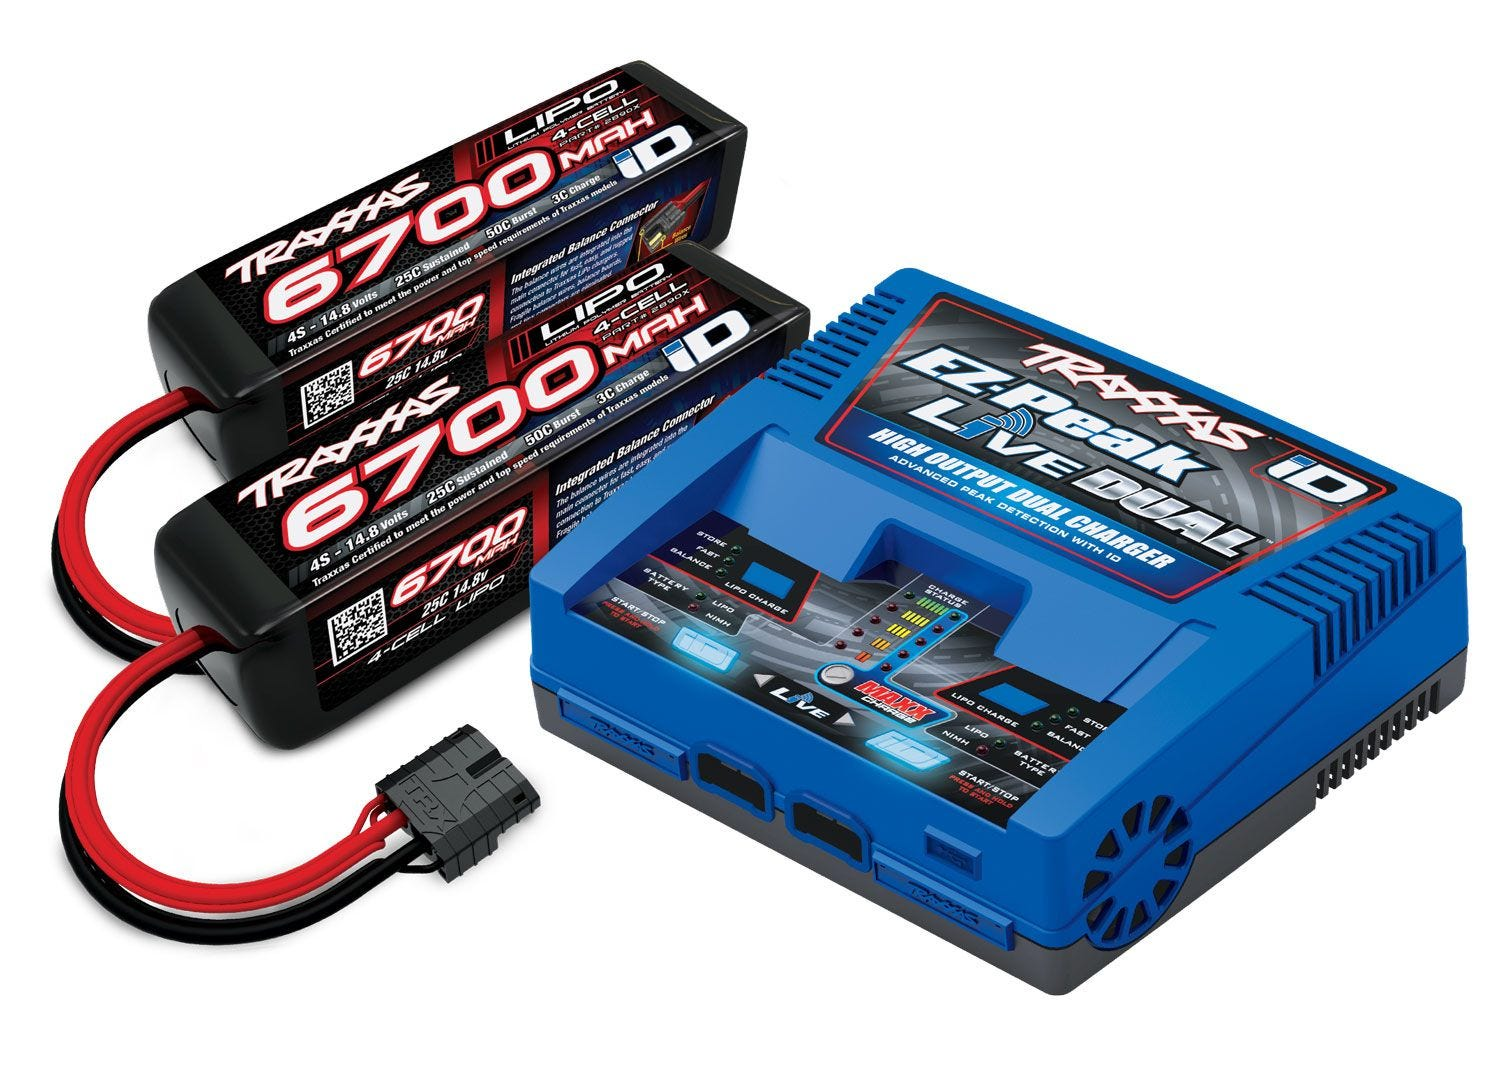 Battery/Charger Completer Pack; Dual iD Charger, 2 - 6700mAh 14.8V 4S 25C LiPo Battery